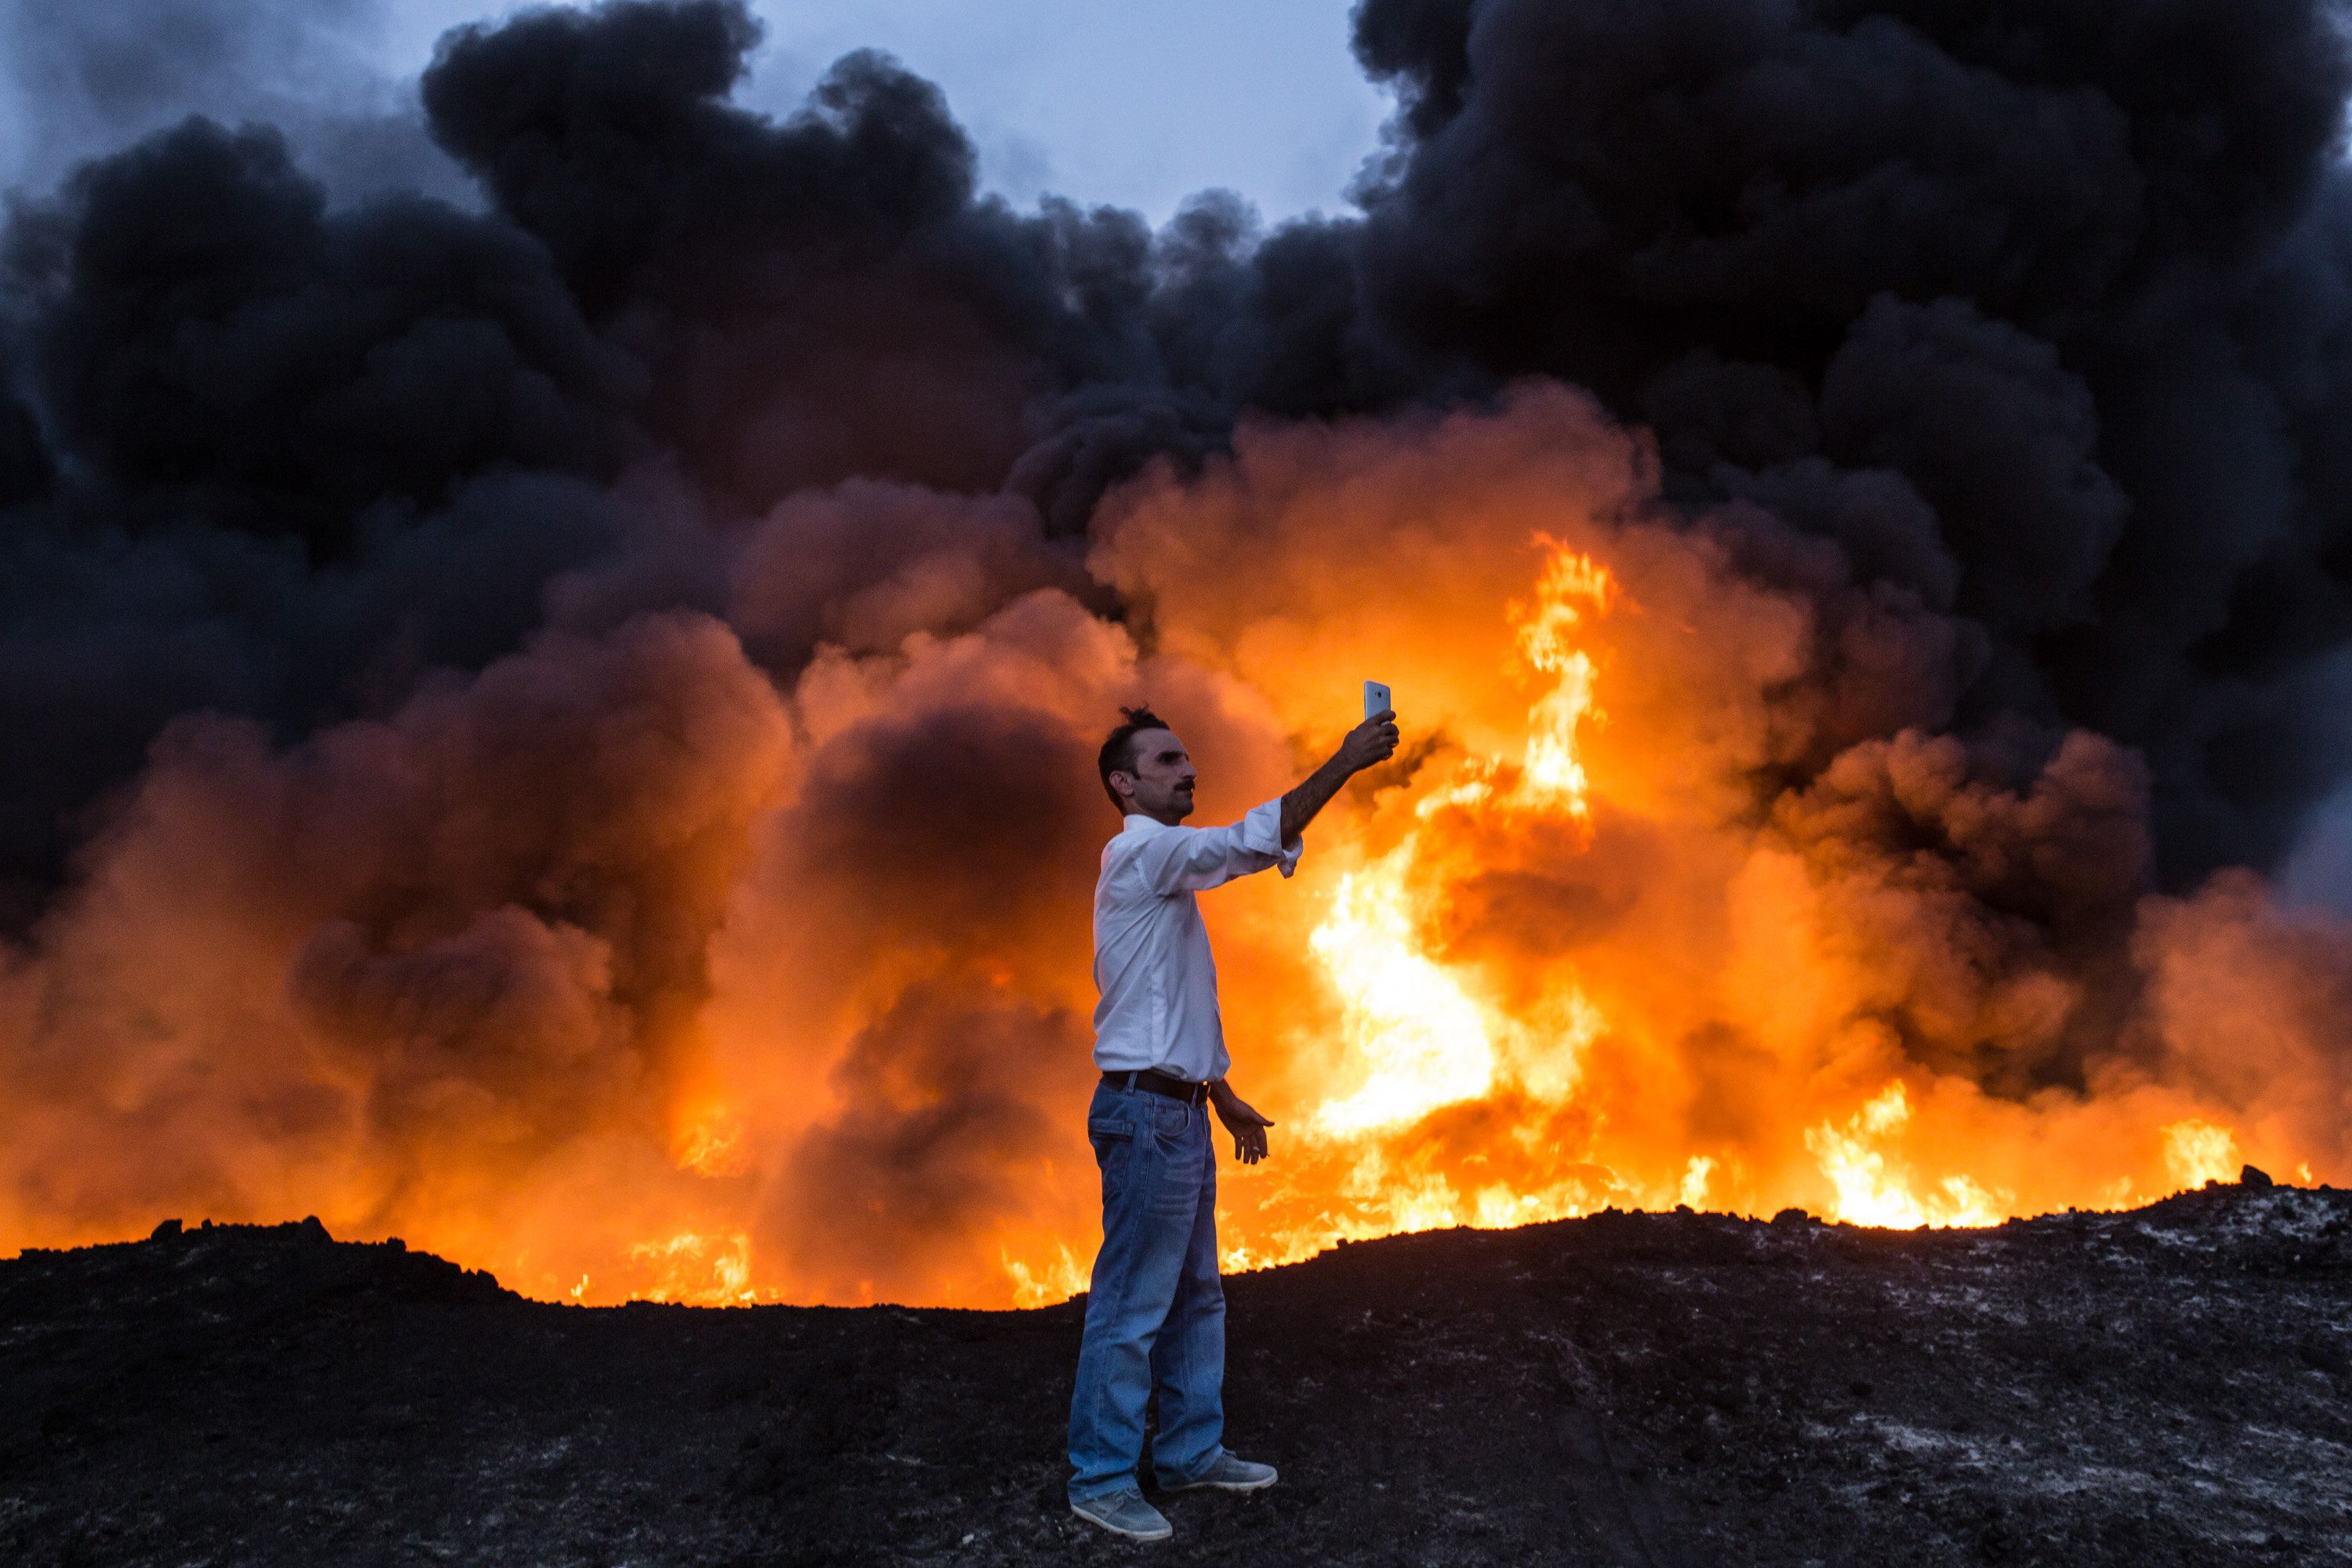 A man takes a selfie in front of oil that has been set ablaze in the Qayyarah area of Iraq, some 35 miles south of Mosul,&nbs